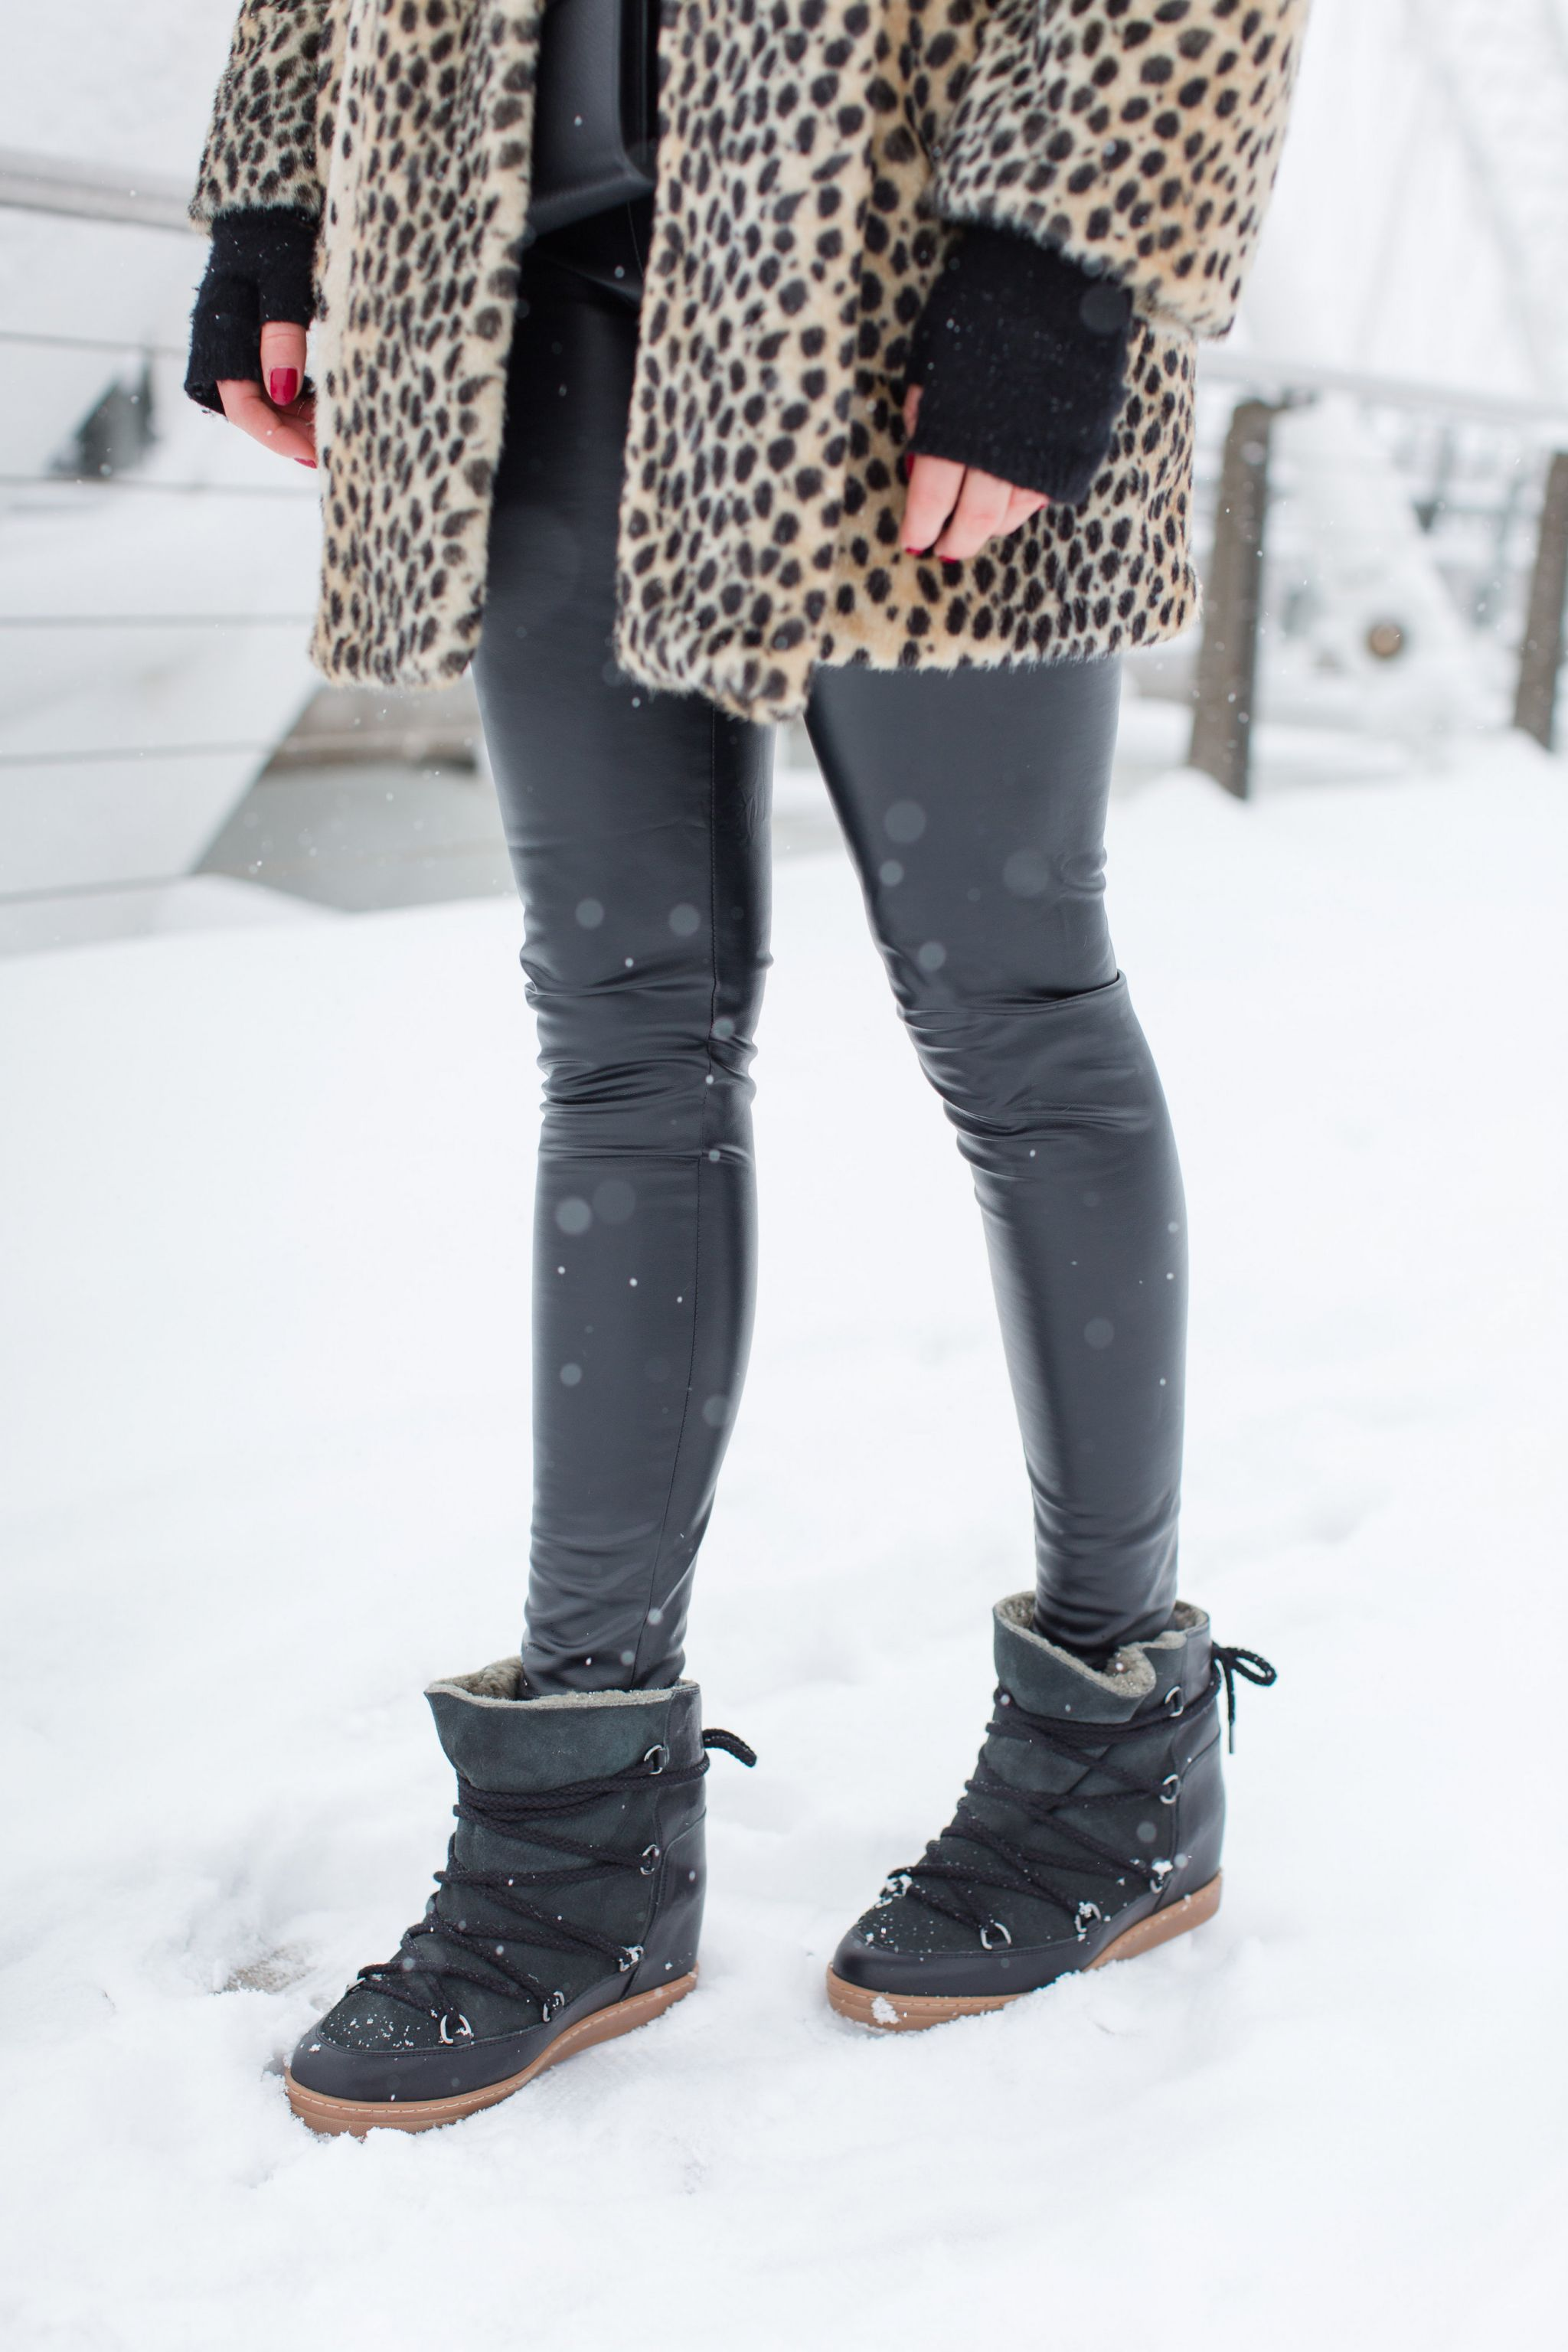 life with aco, isabel marant nowles boots, leopard jacket, winter outfit ottawa